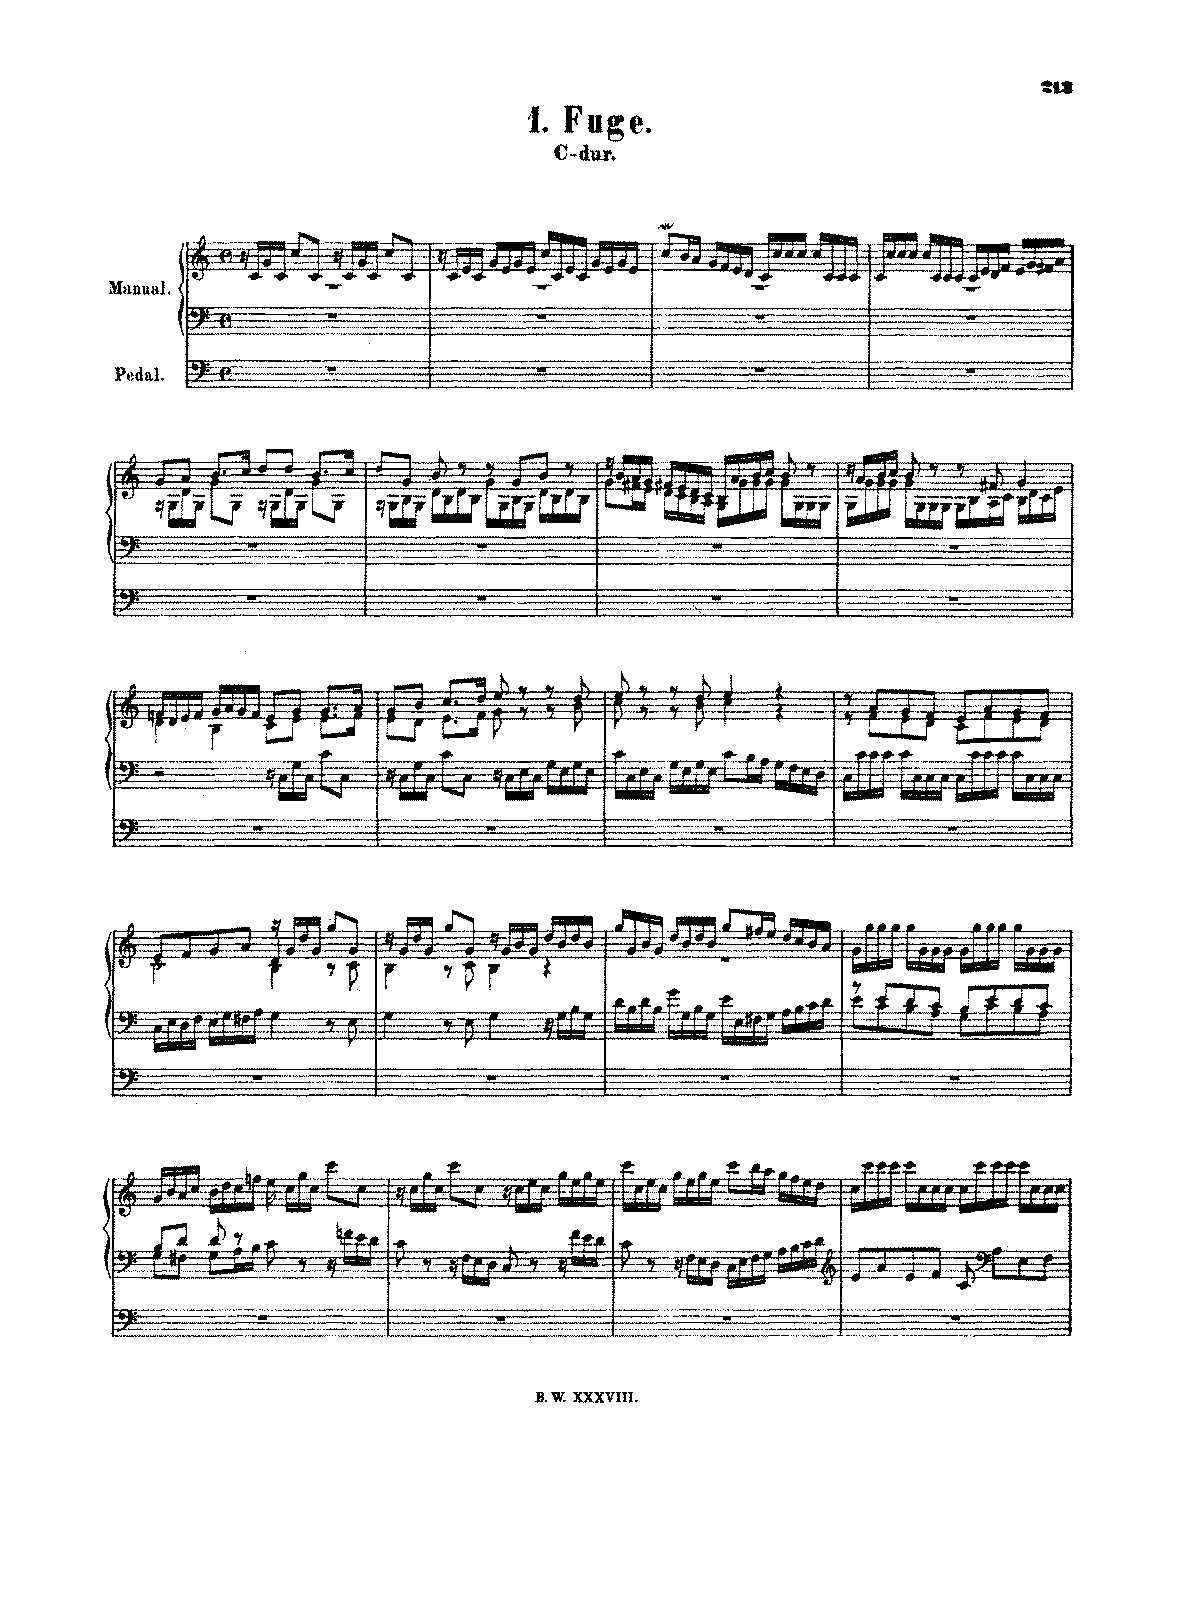 Bach - BGA - Fugue C major.pdf